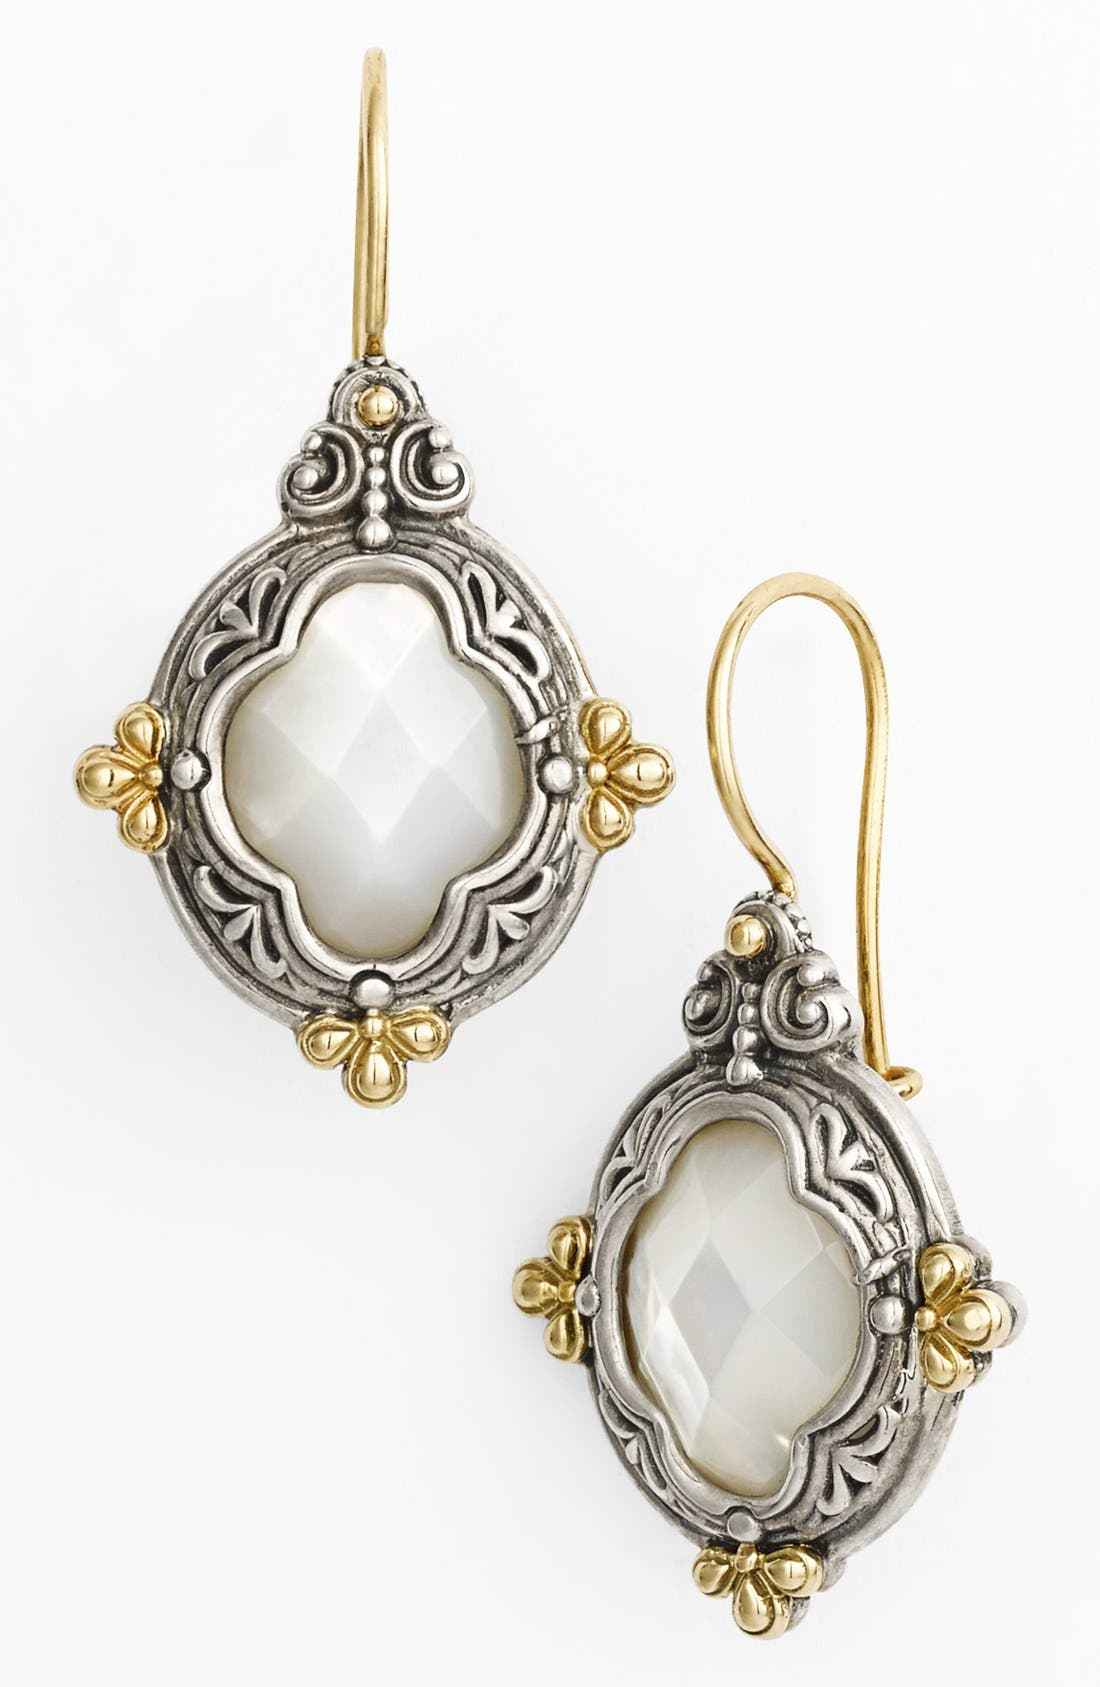 'Selene' Drop Earrings,                             Main thumbnail 1, color,                             Silver/ Gold